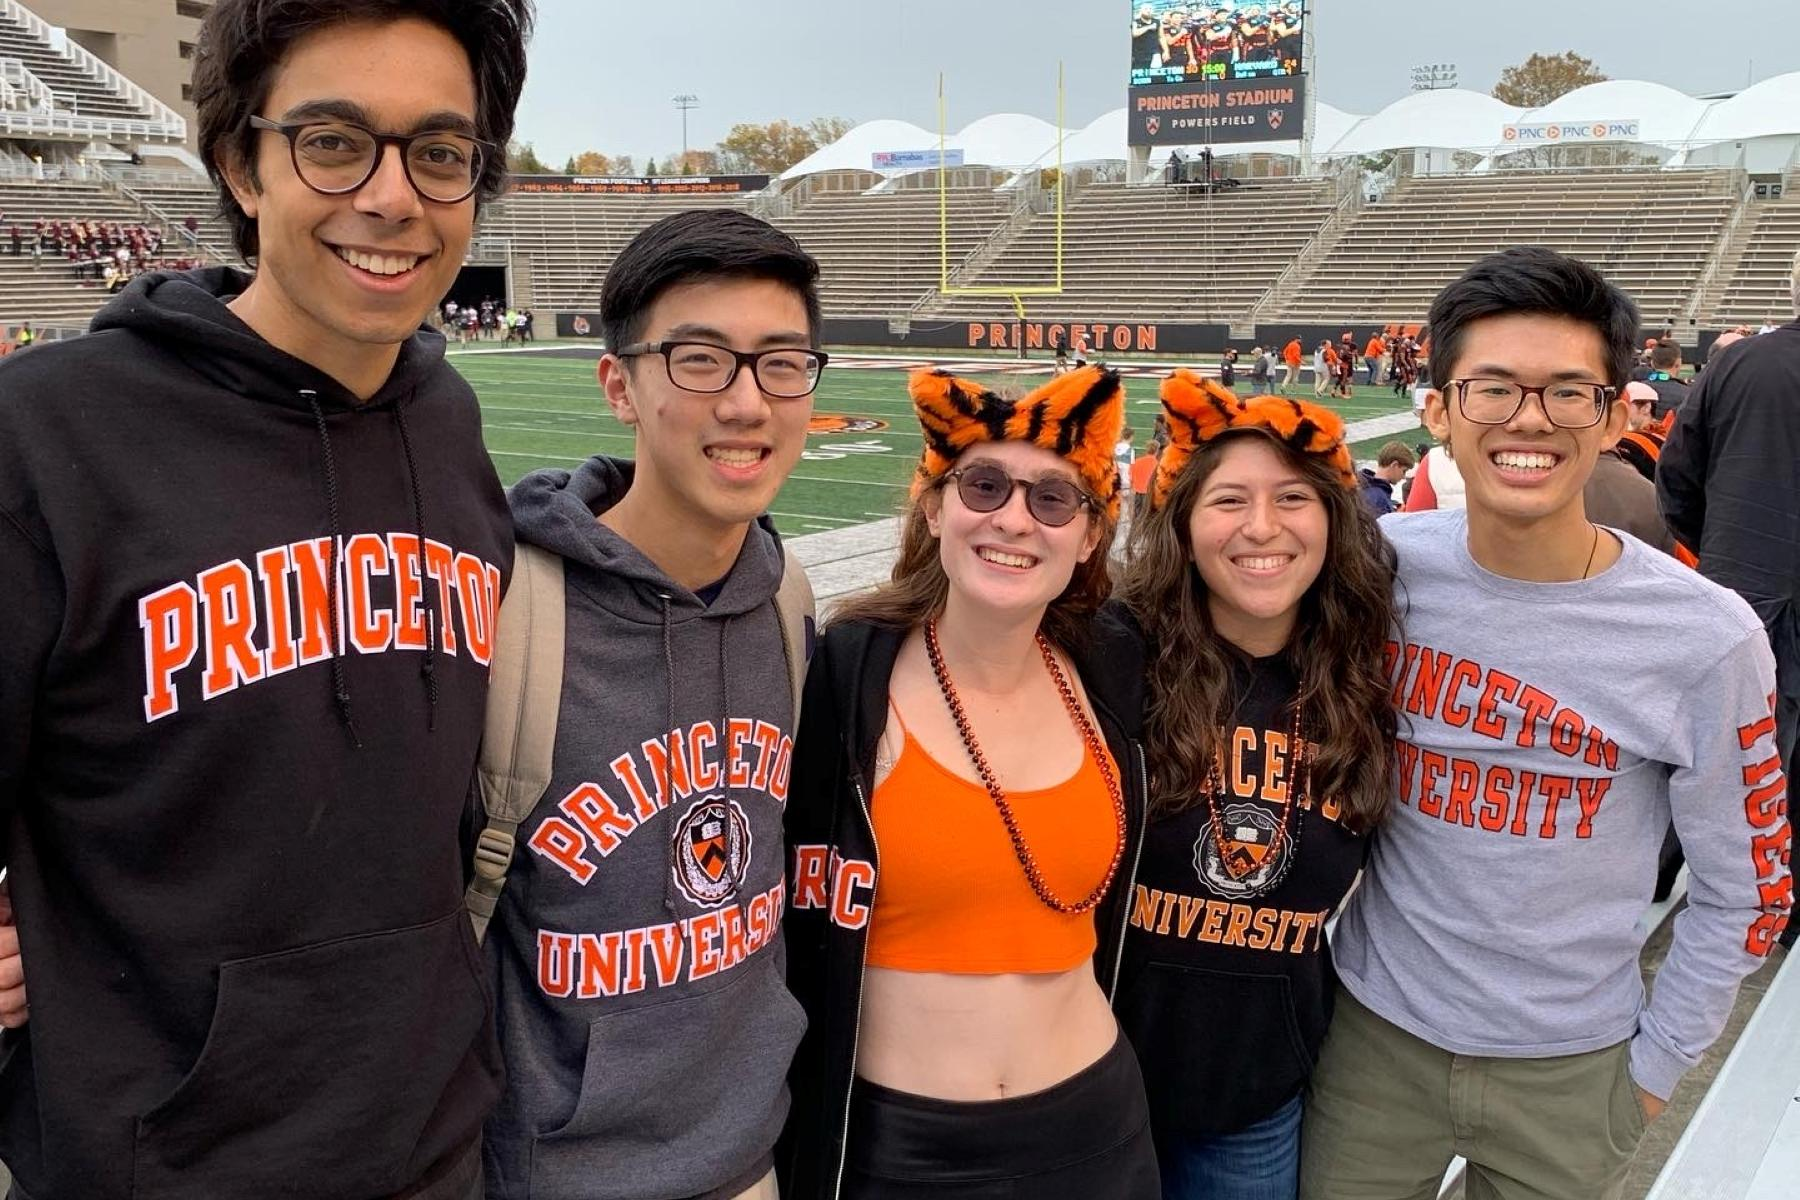 A group of friends celebrating a Princeton victory at the football stadium.